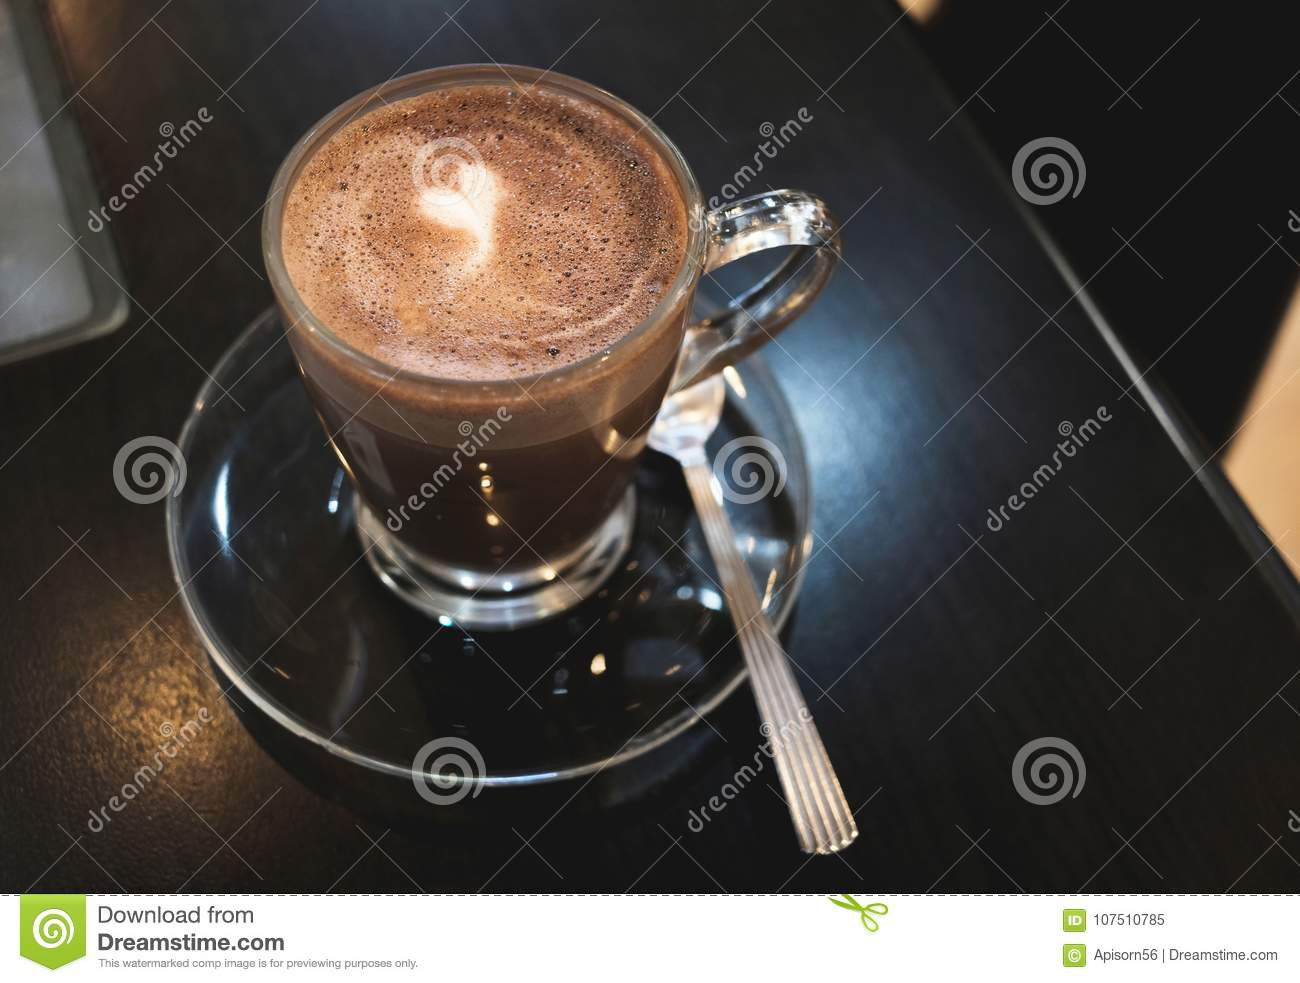 Brown cocoa in coffee cup with white heart shape on black wooden table background